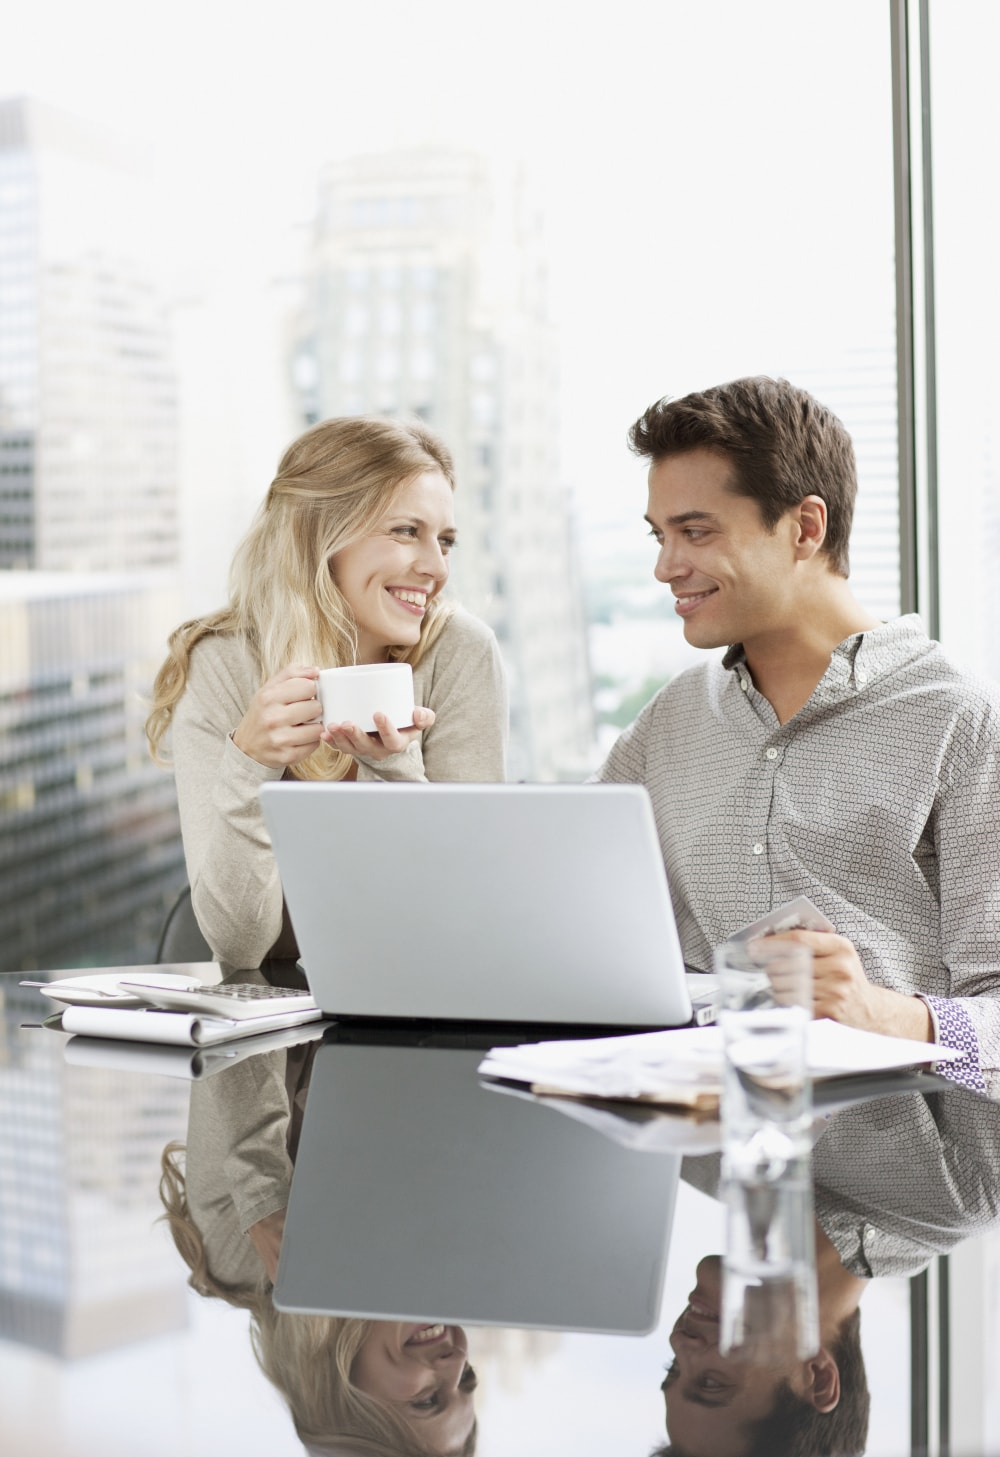 business-relationship-smile-office-romance